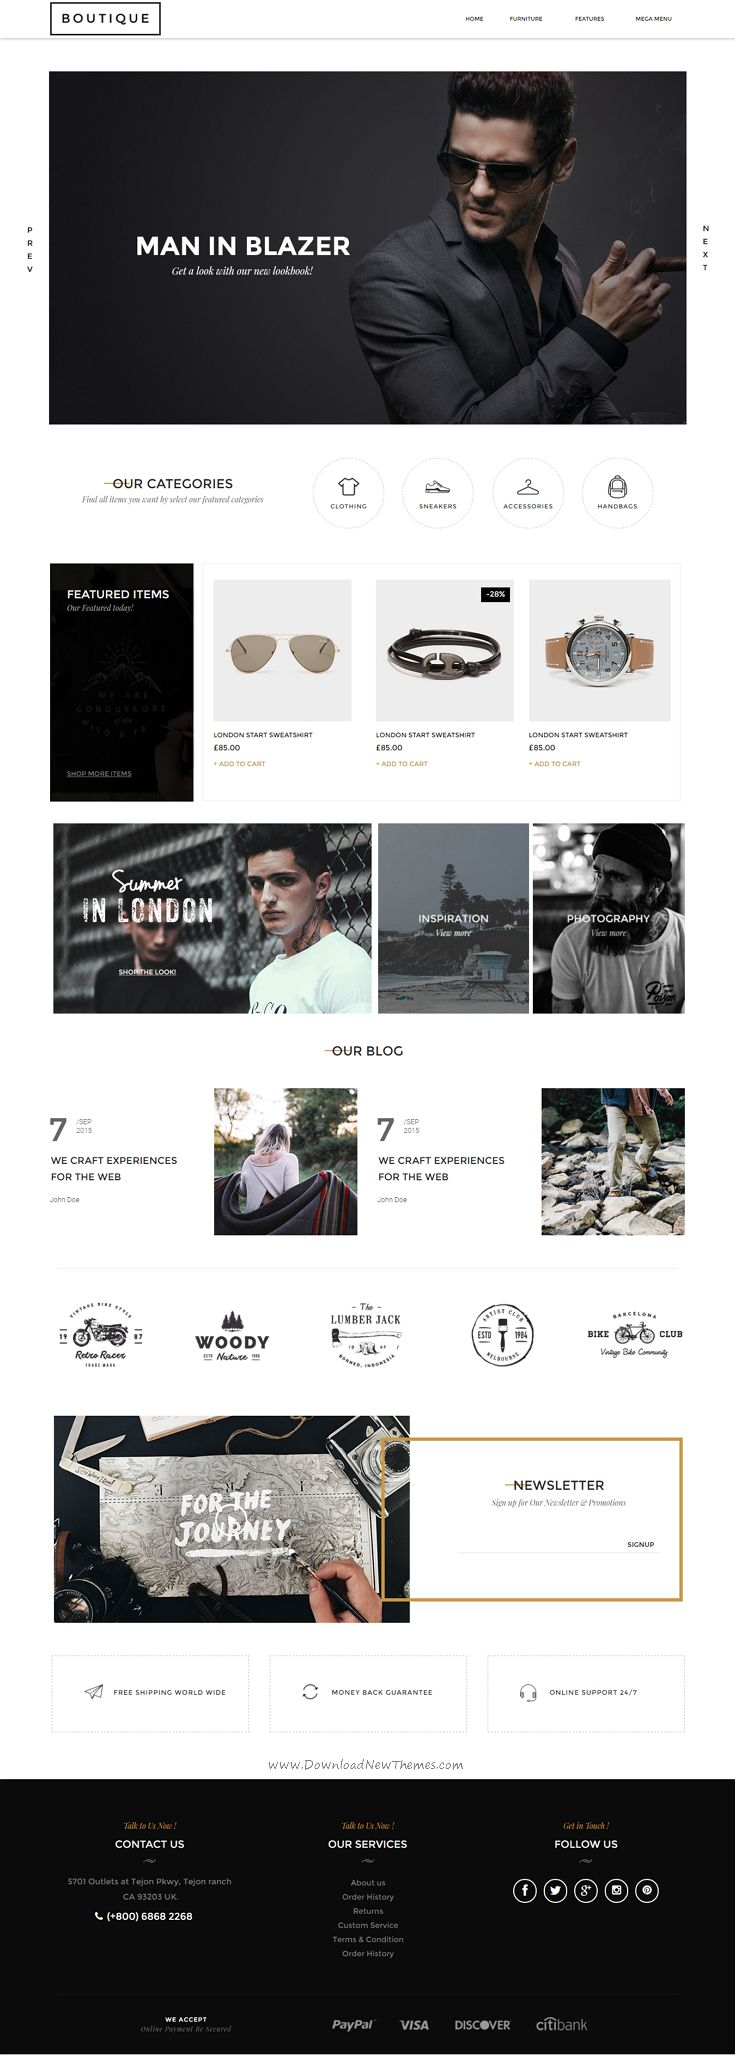 Boutique is a modern, clean and professional Muse Template for multipurpose eCommerce website. #adobe #musetemplate